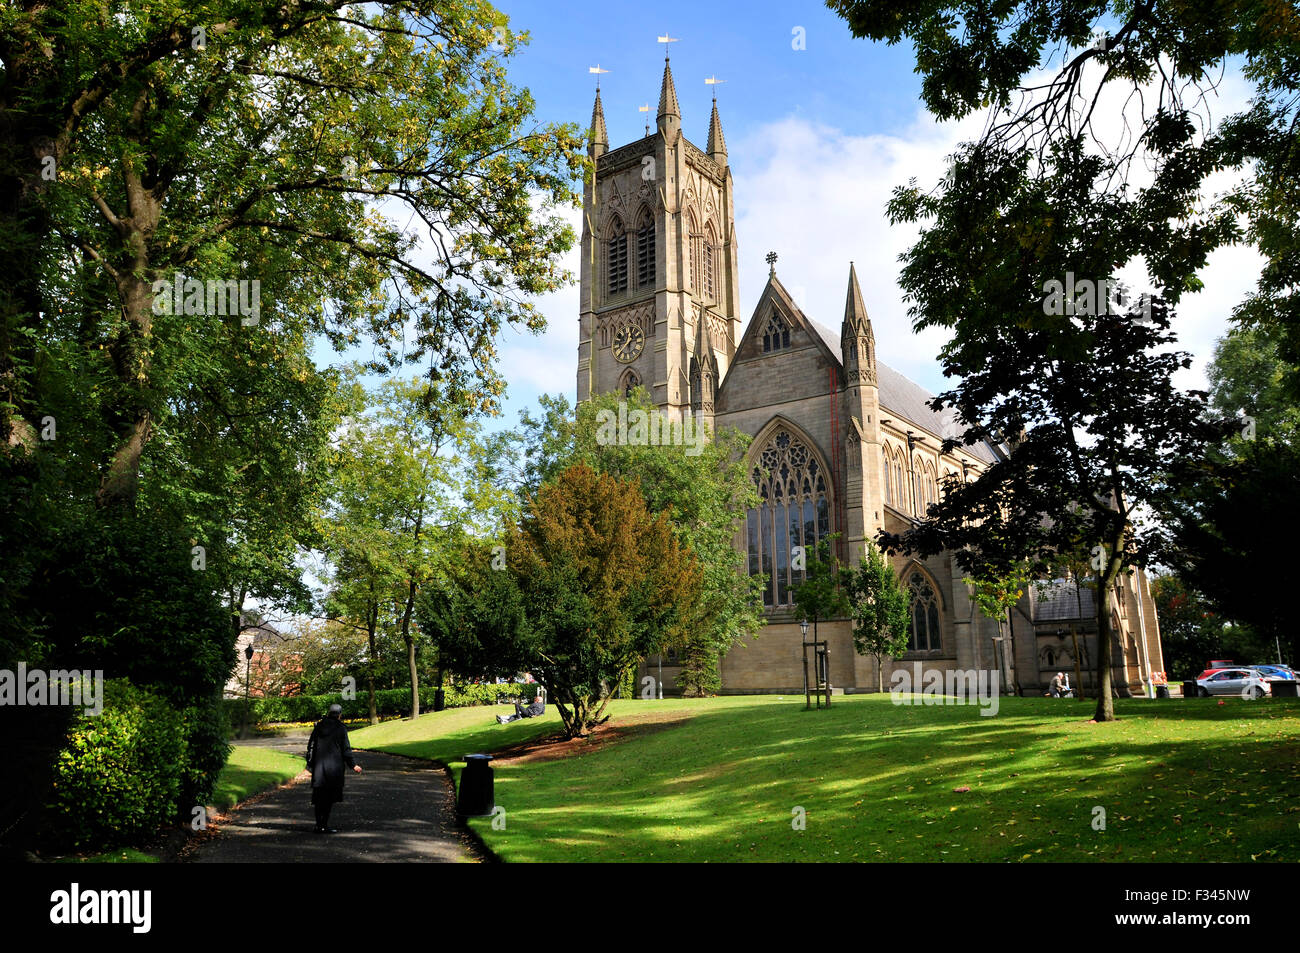 Bolton Parish Church, Bolton, England. Picture by Paul Heyes, Tuesday September 29, 2015 - Stock Image